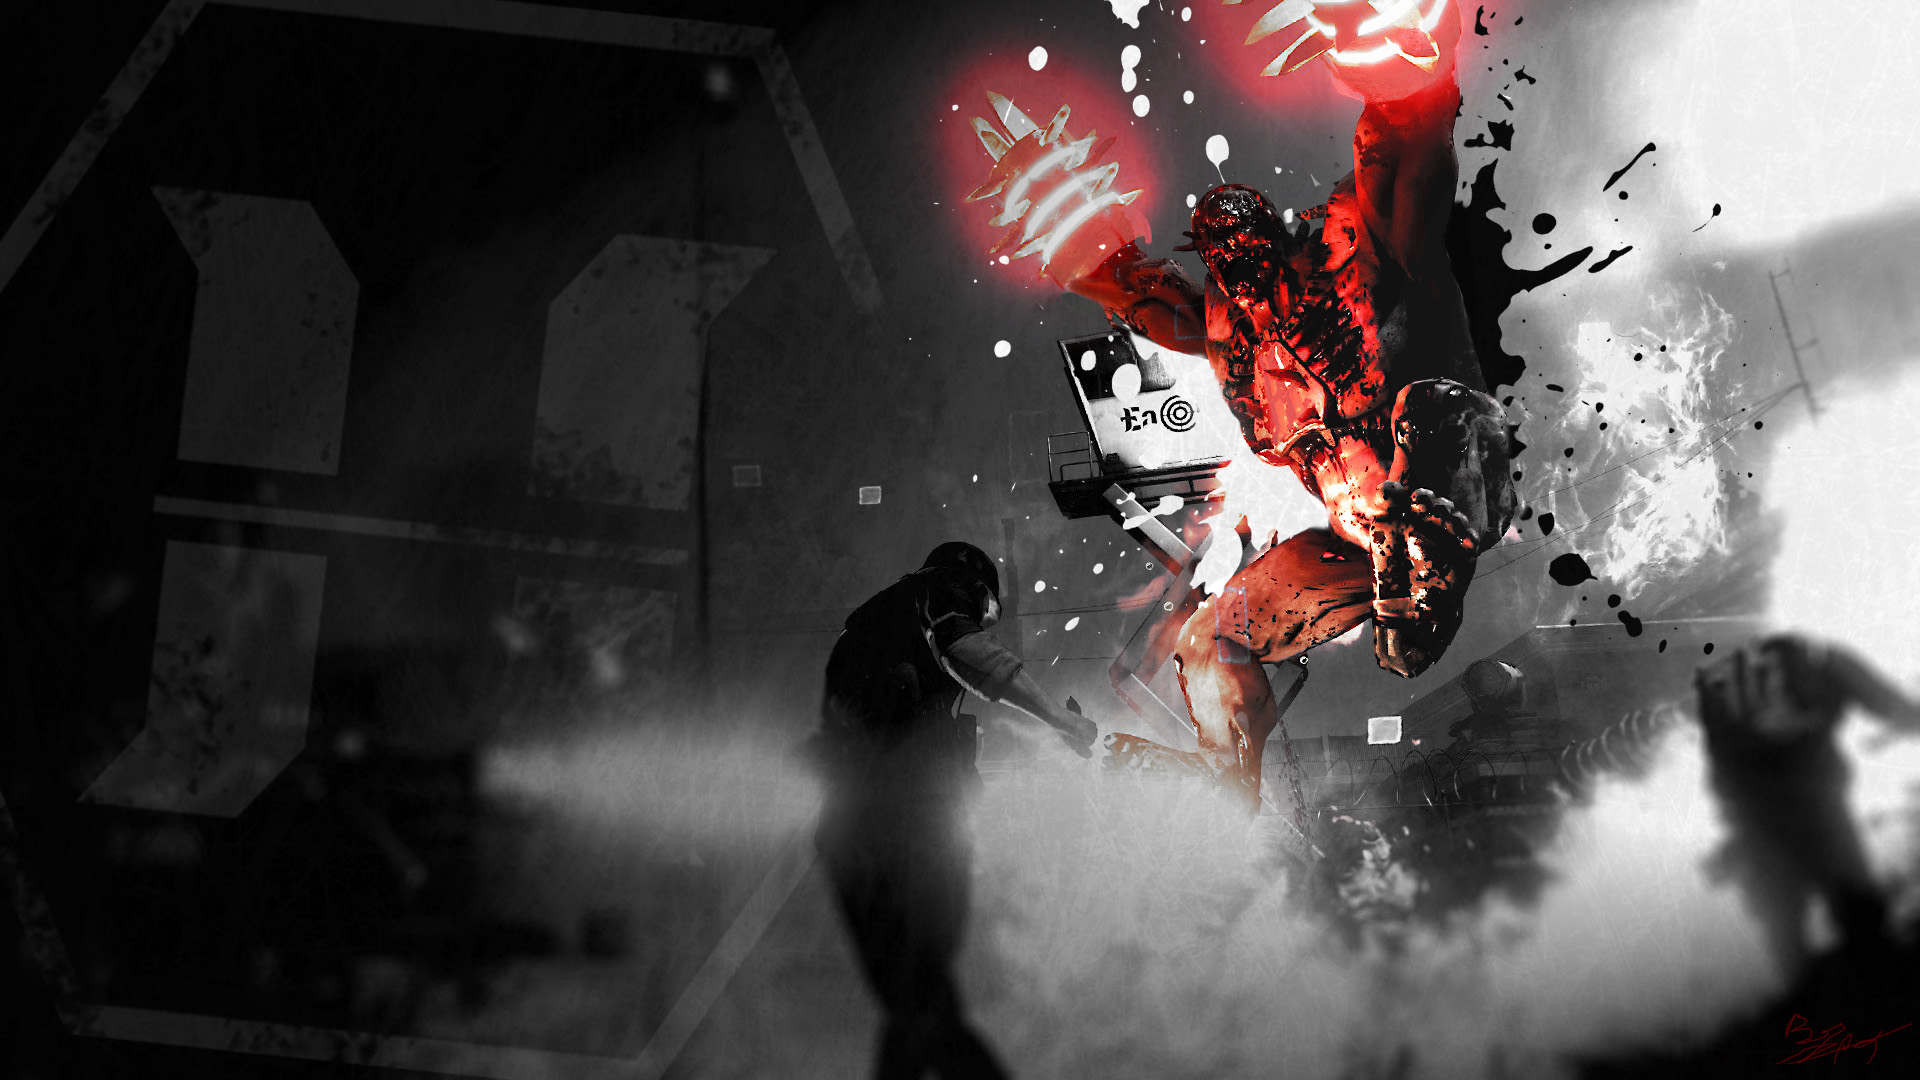 Wallpaper Killing Floor 2 By French97 On Deviantart